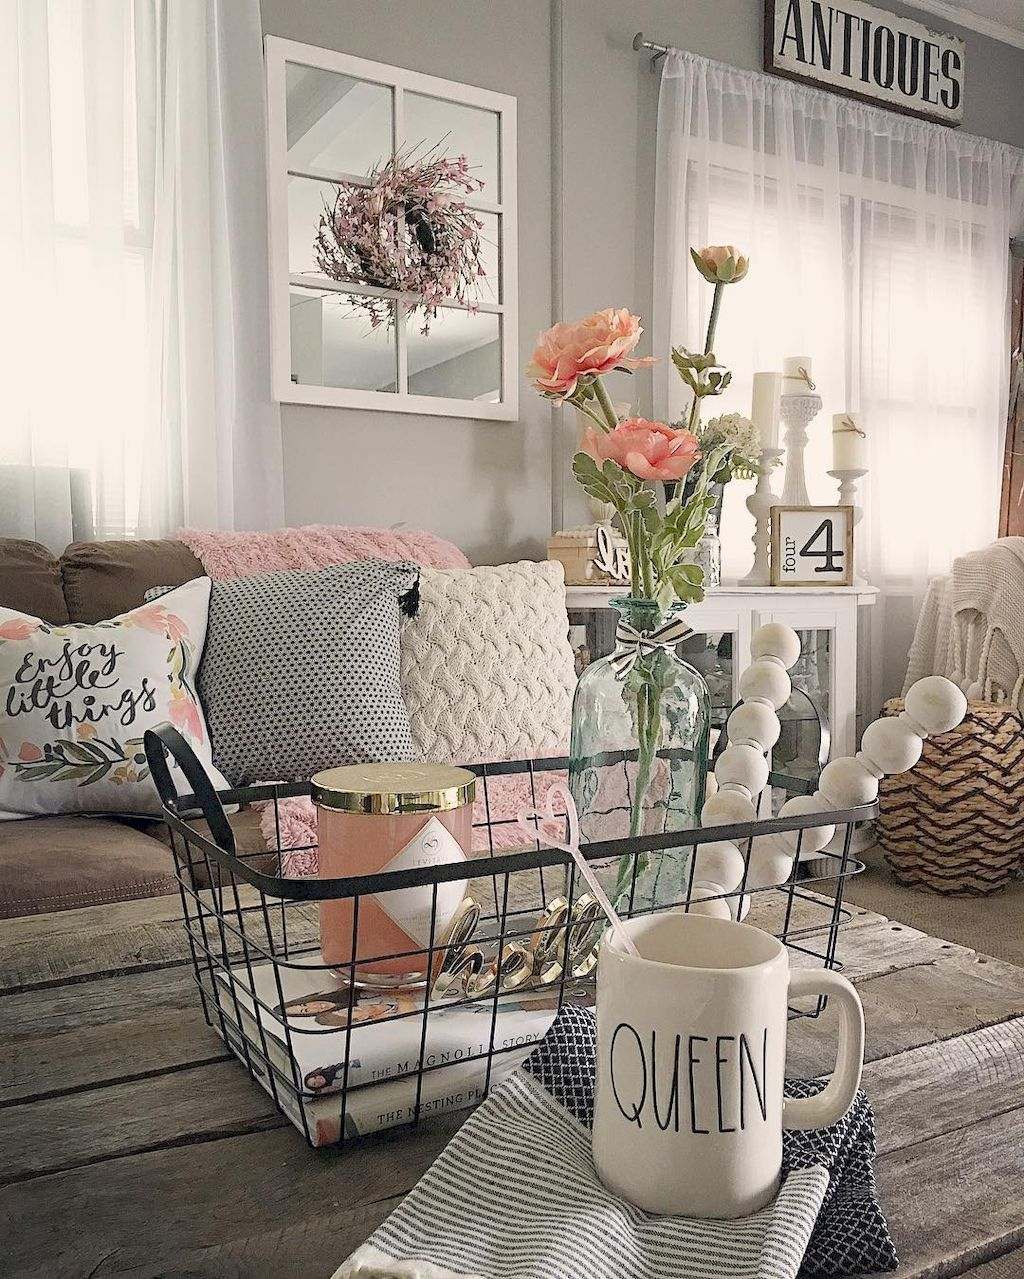 Check out these shabby chic designs and style ideas. Click on image to see many & 25 Beautiful Shabby Chic Interior Designs And Ideas - Page 22 of 25 ...